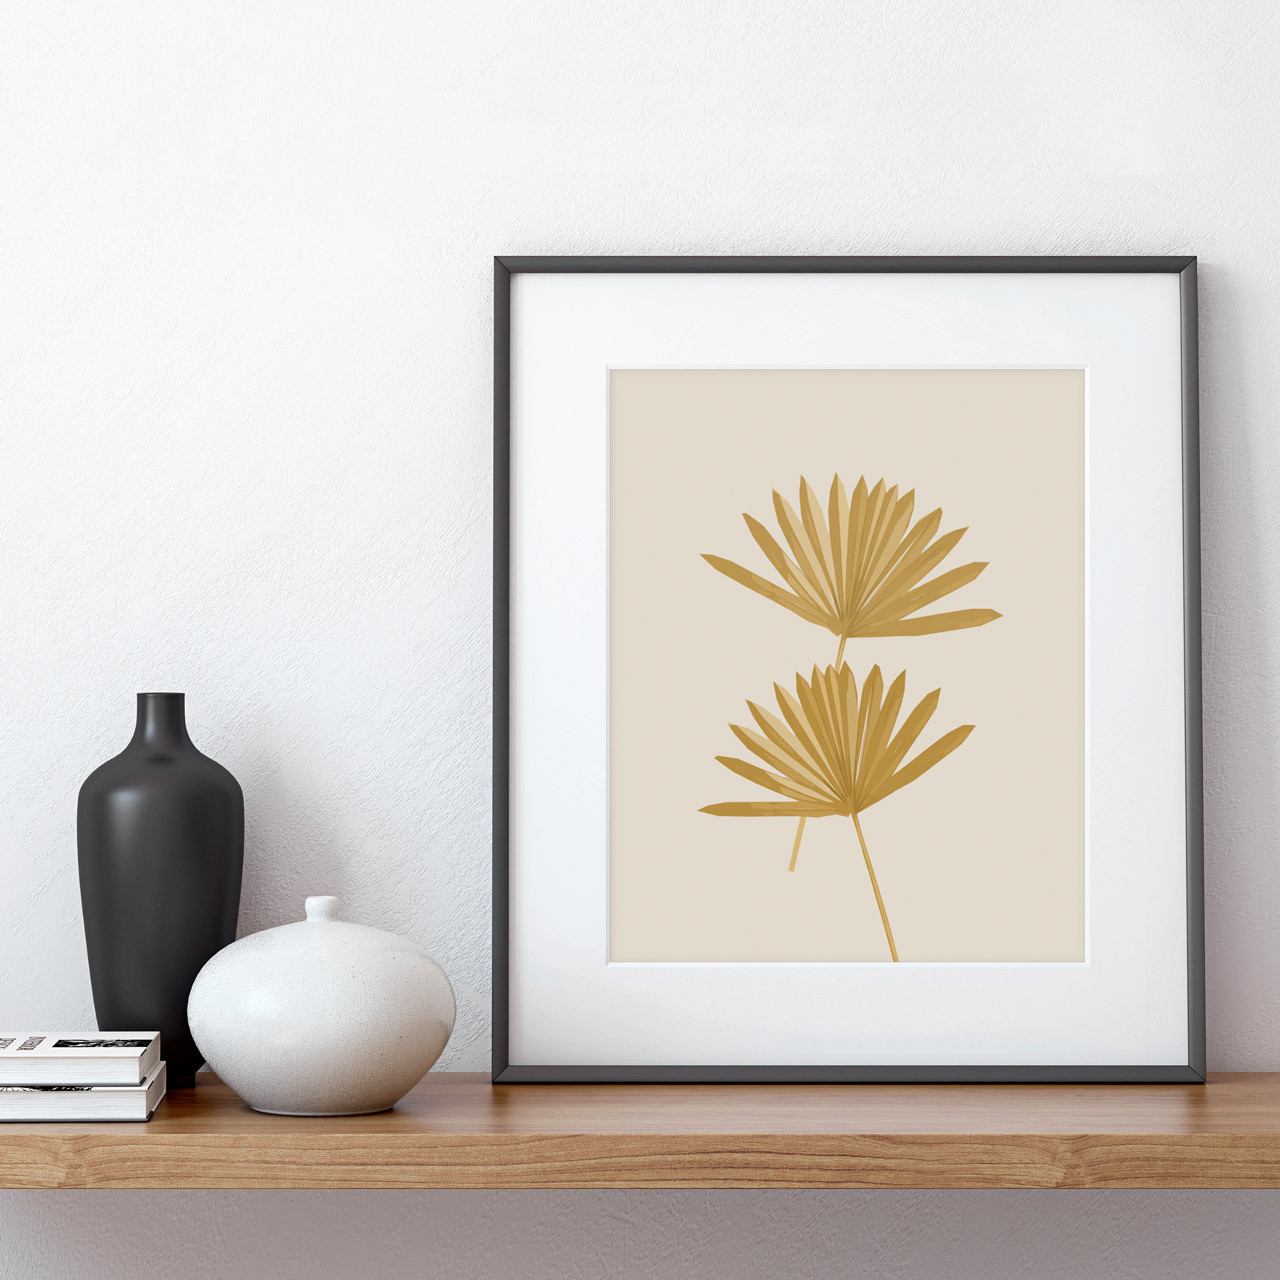 'Sun Palm III' in Ochre Abstract Palm Leaf Art Print from The Printed Home